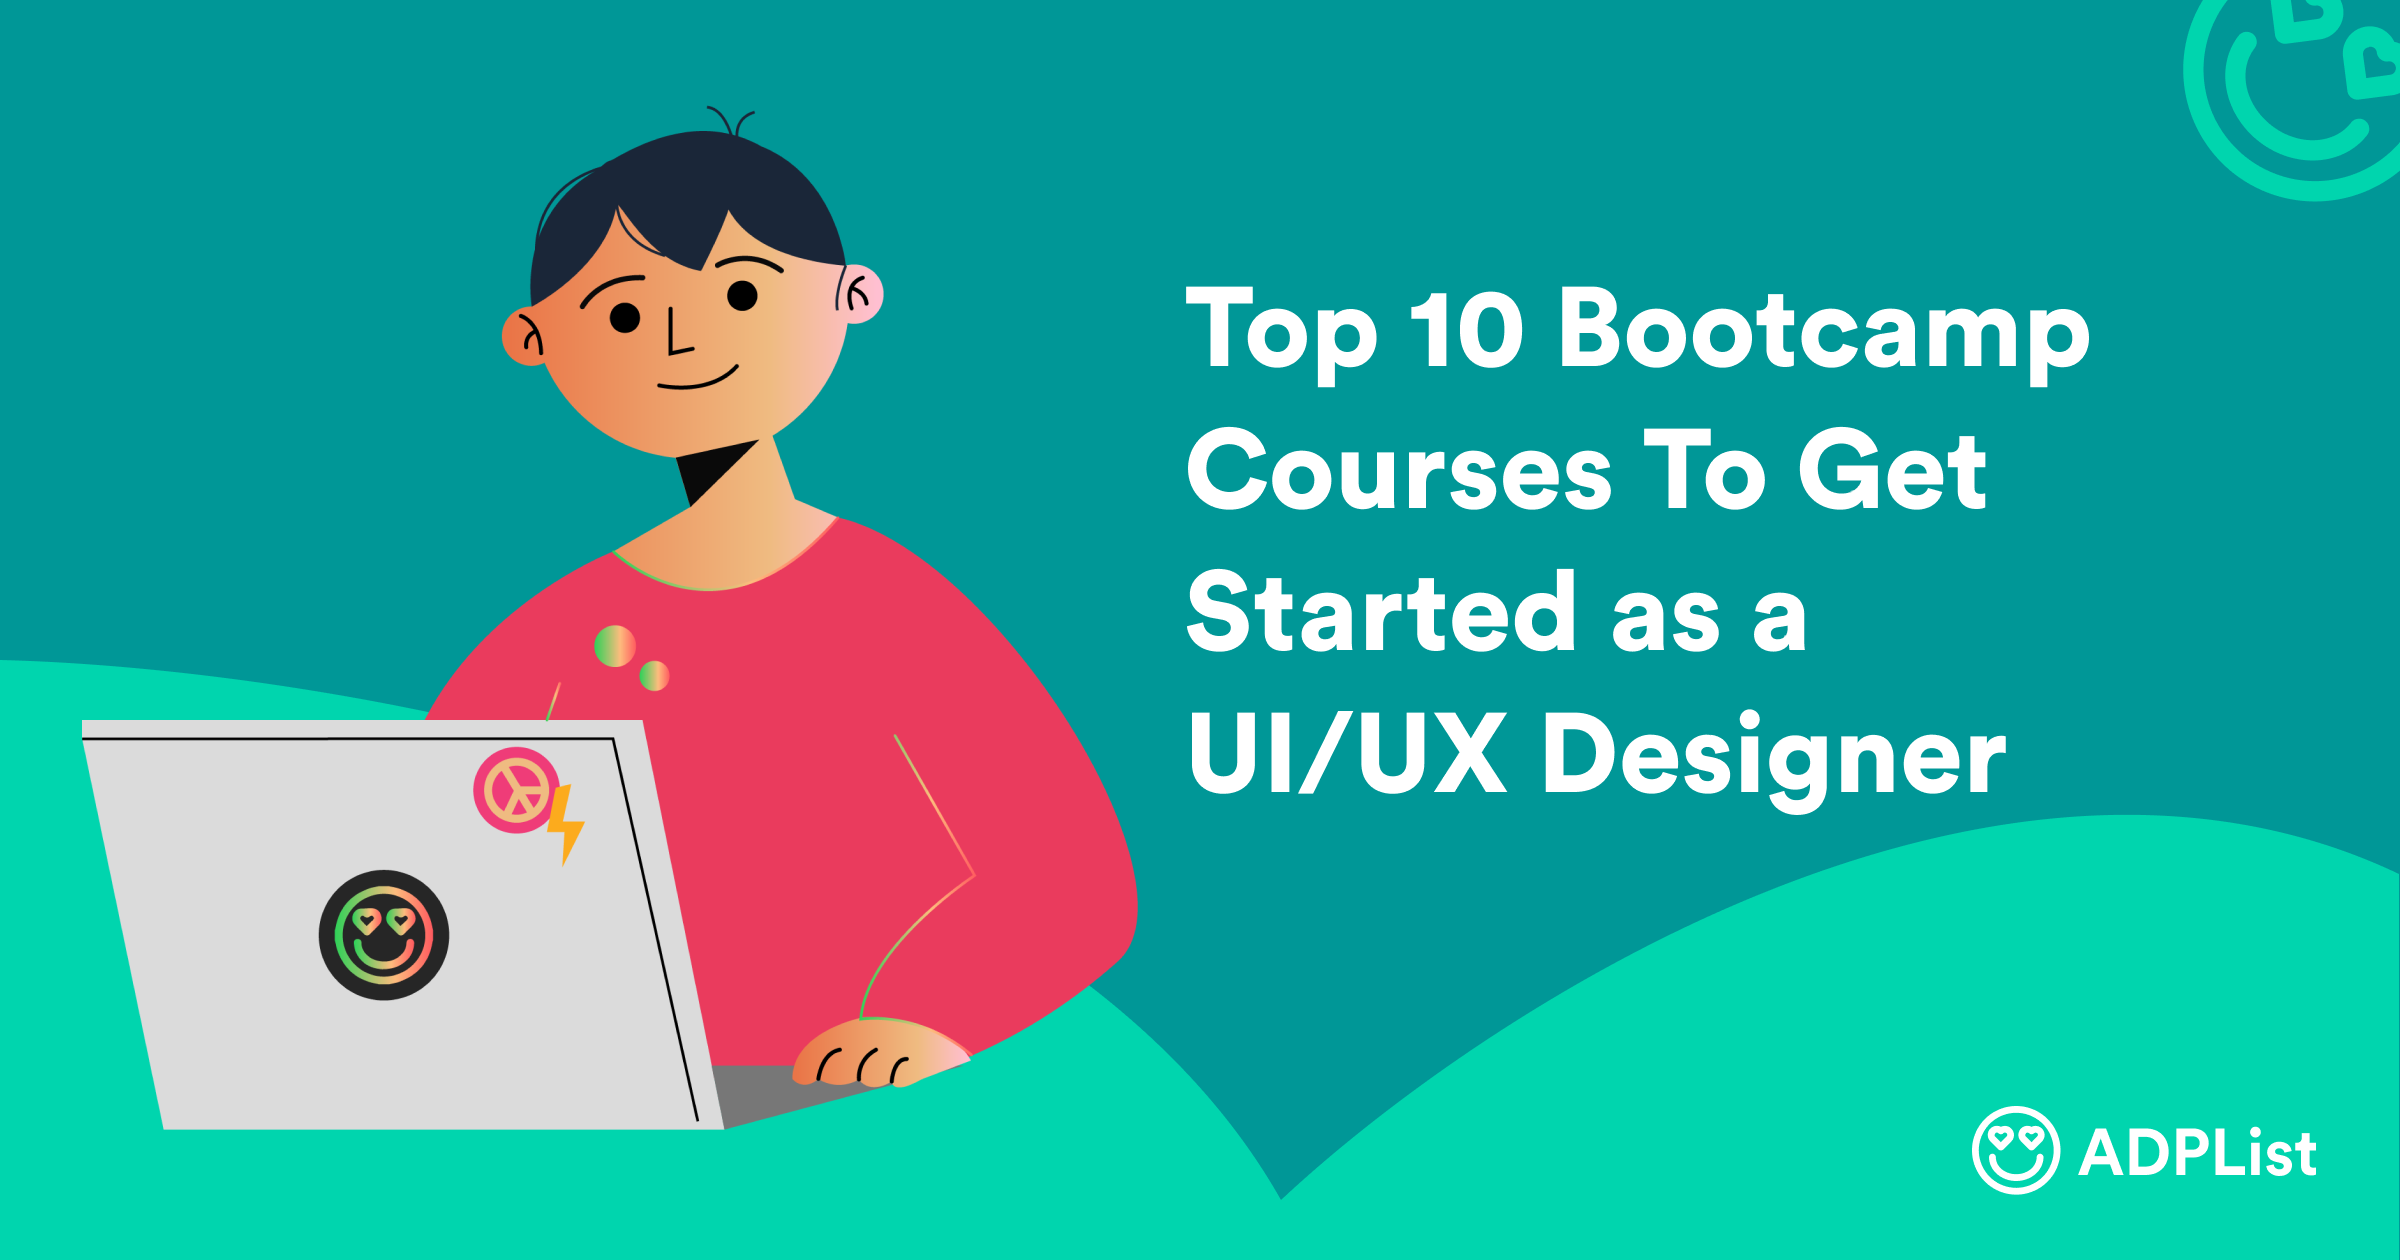 Top 10 Bootcamp Courses To Get Started as UI/UX Designer